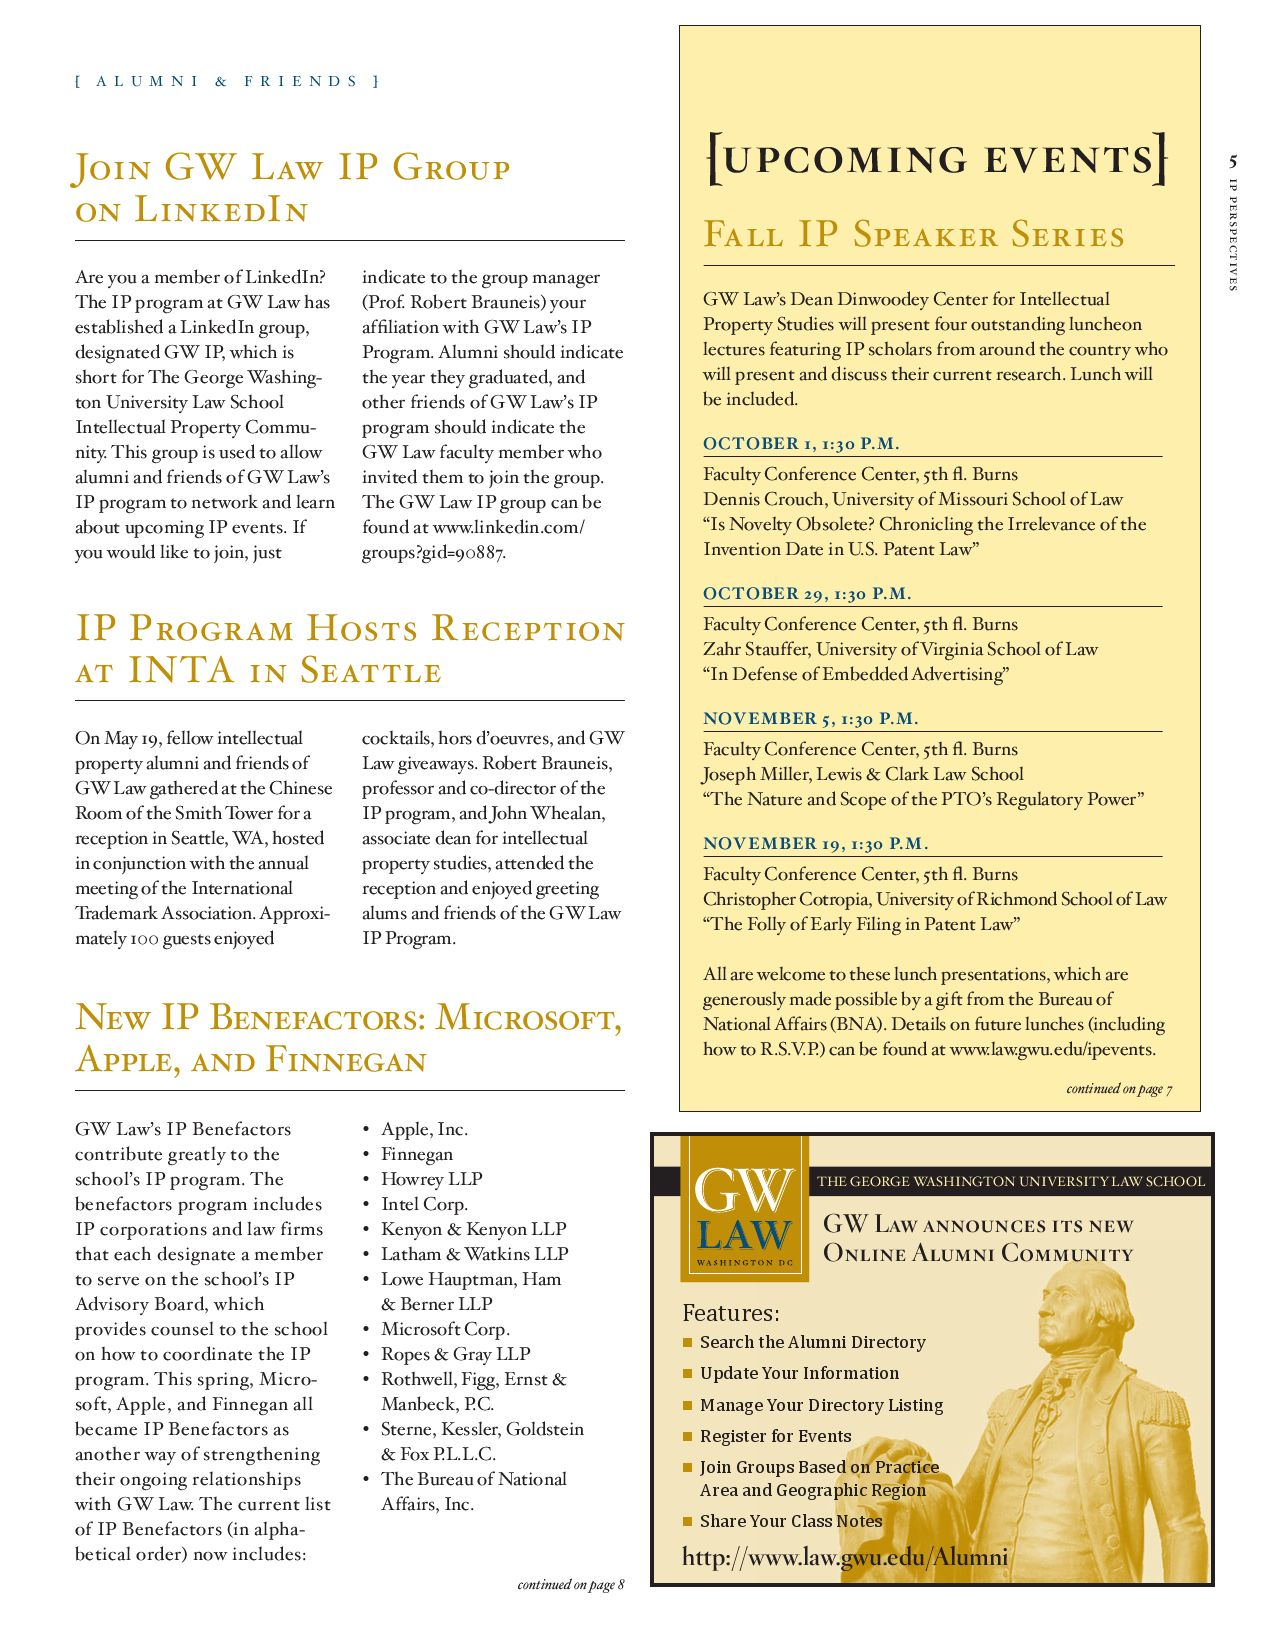 09Fall_IP_Newsletter by The George Washington University Law School